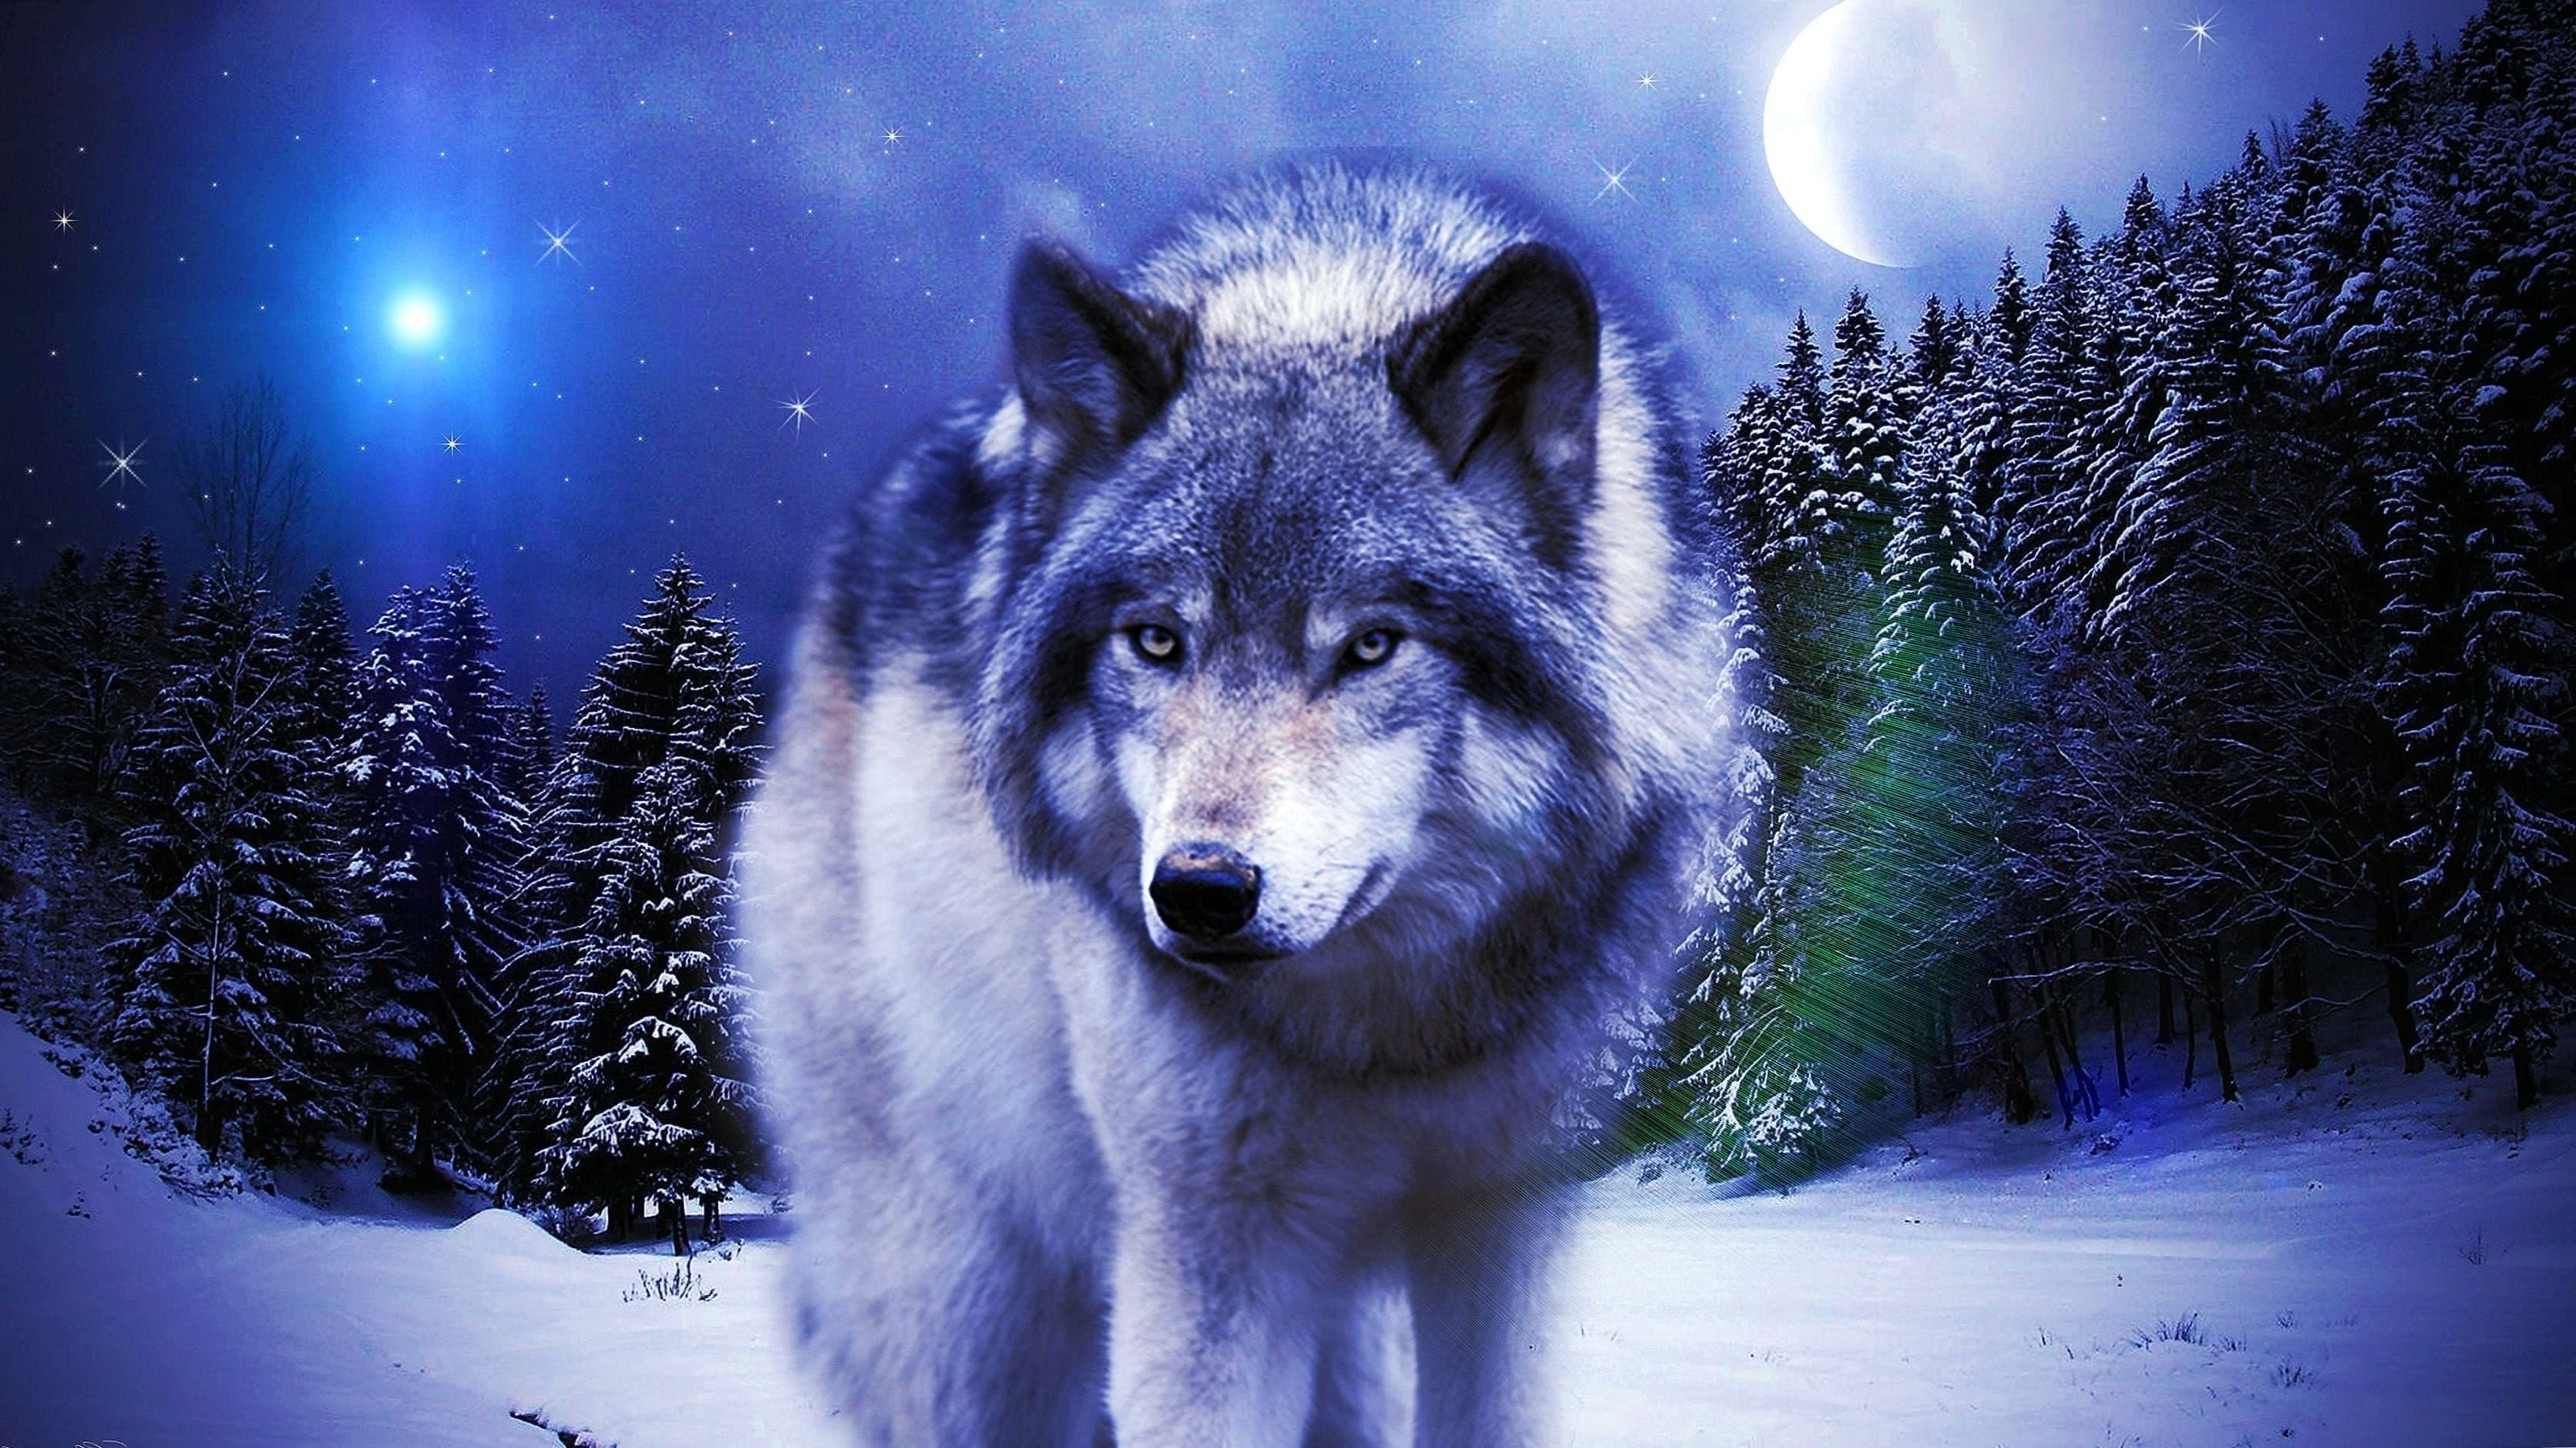 Wallpapers Images Of Wolves